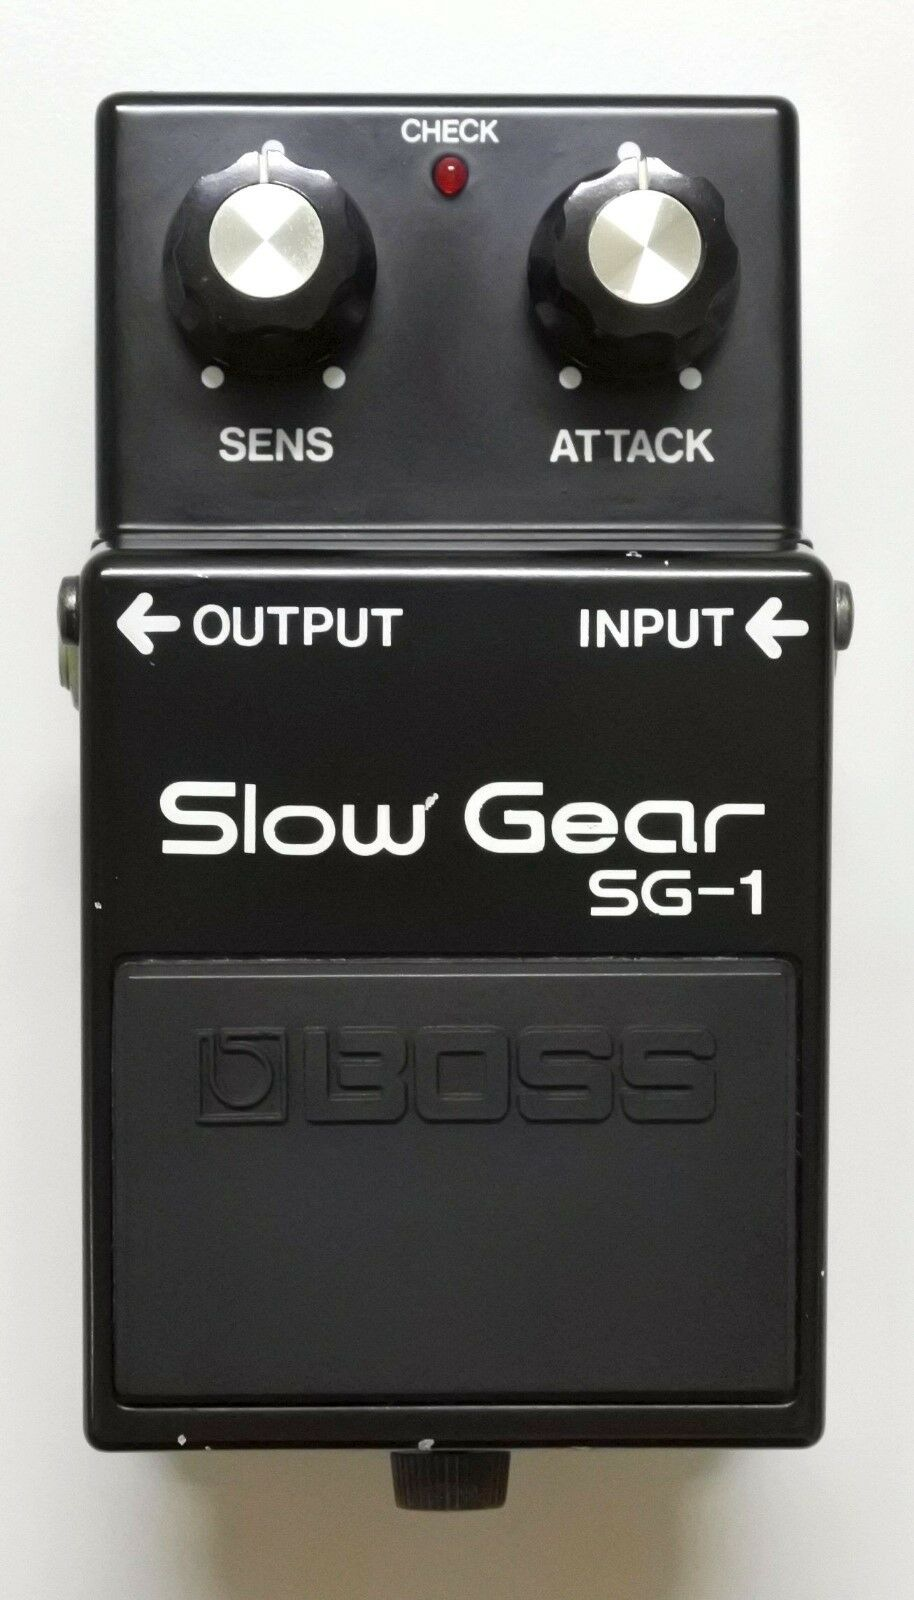 BOSS SG-1 Slow Gear Vintage Guitar Effects Pedal Made in Japan MIJ 1981  7